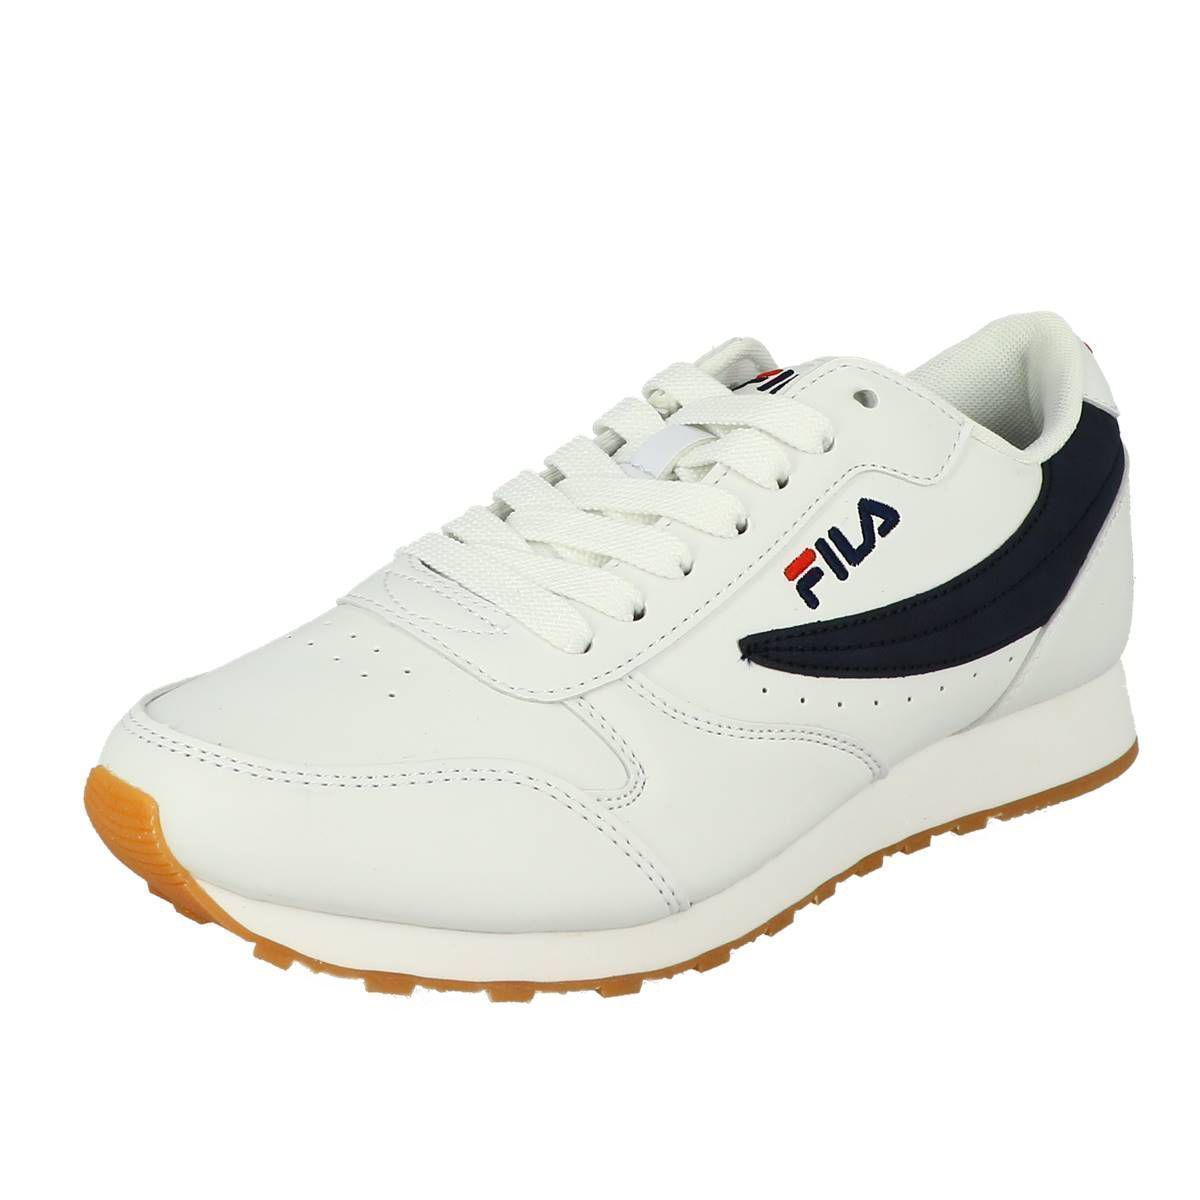 Fila homme orbit low blanc1705201_2